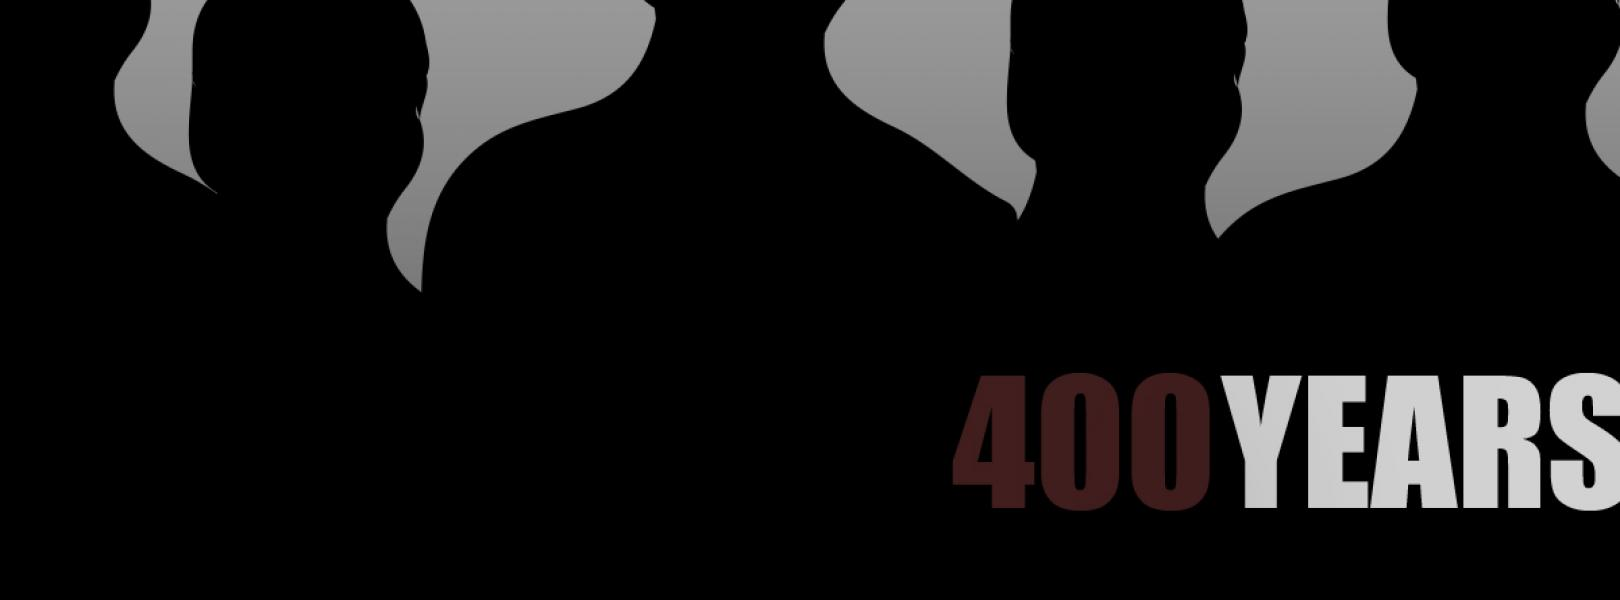 "Silhouettes of people with ""400 years"""